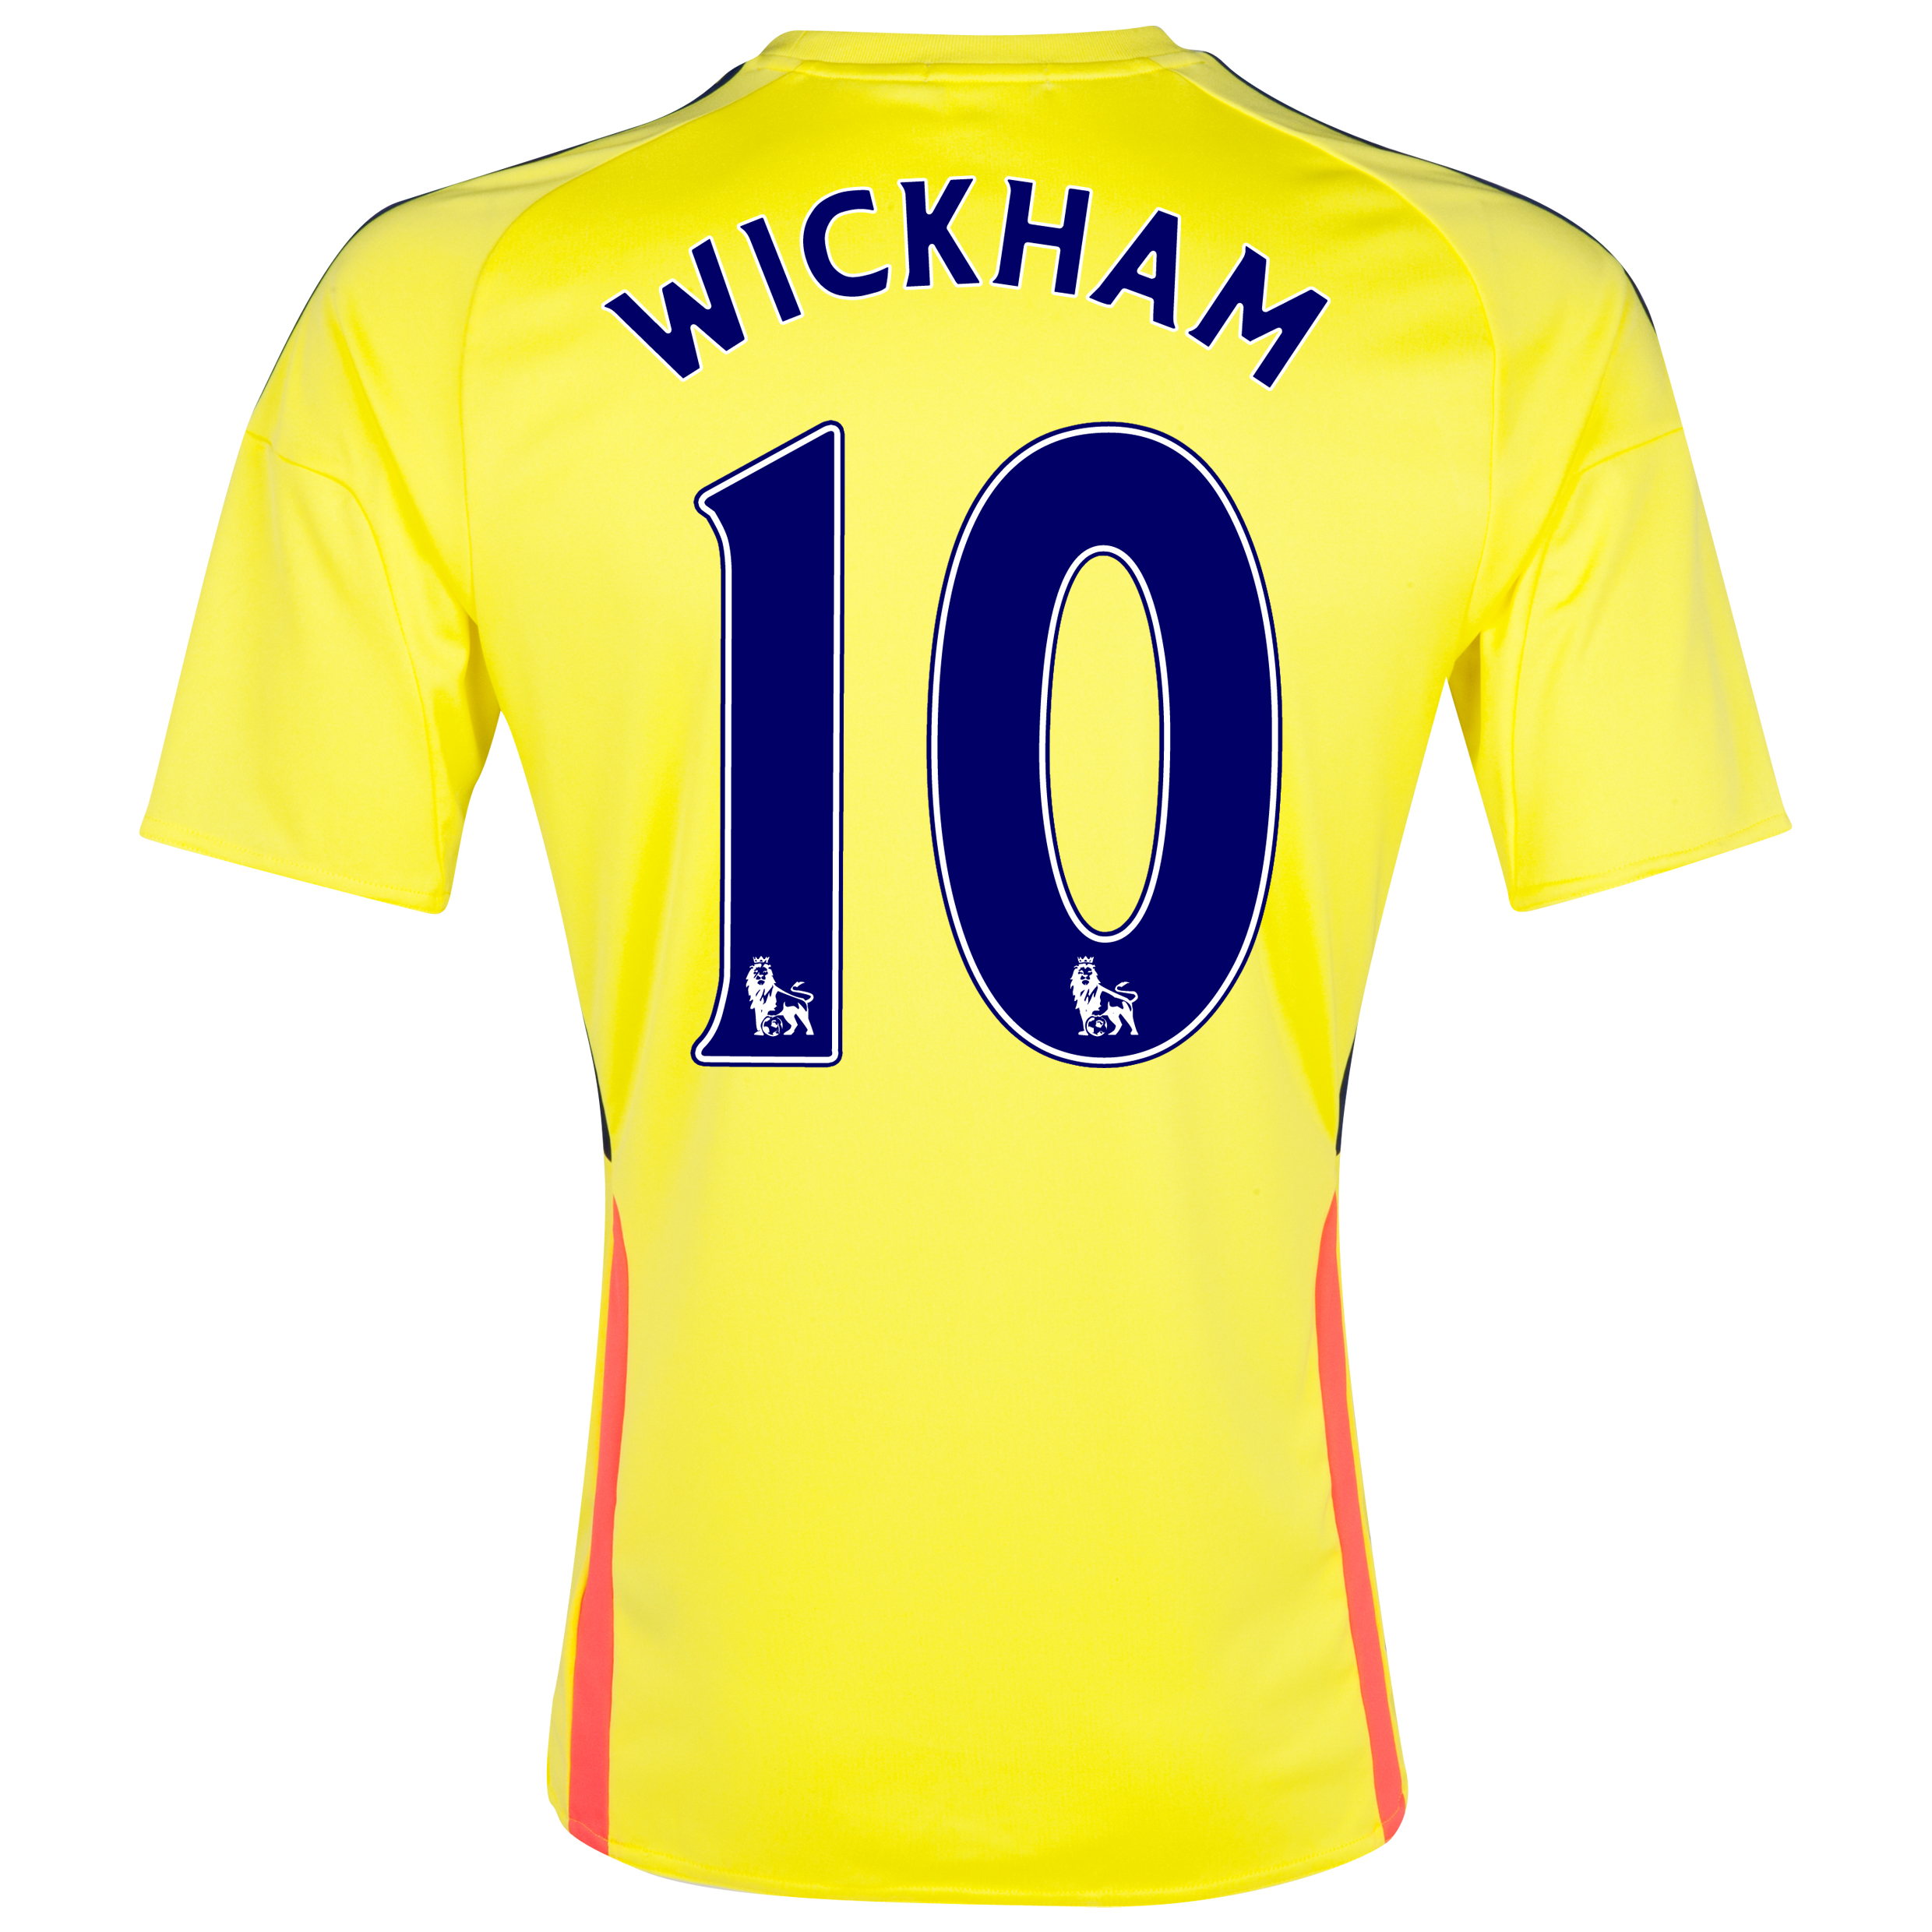 Sunderland Away Shirt 2013/14 with Wickham 10 printing